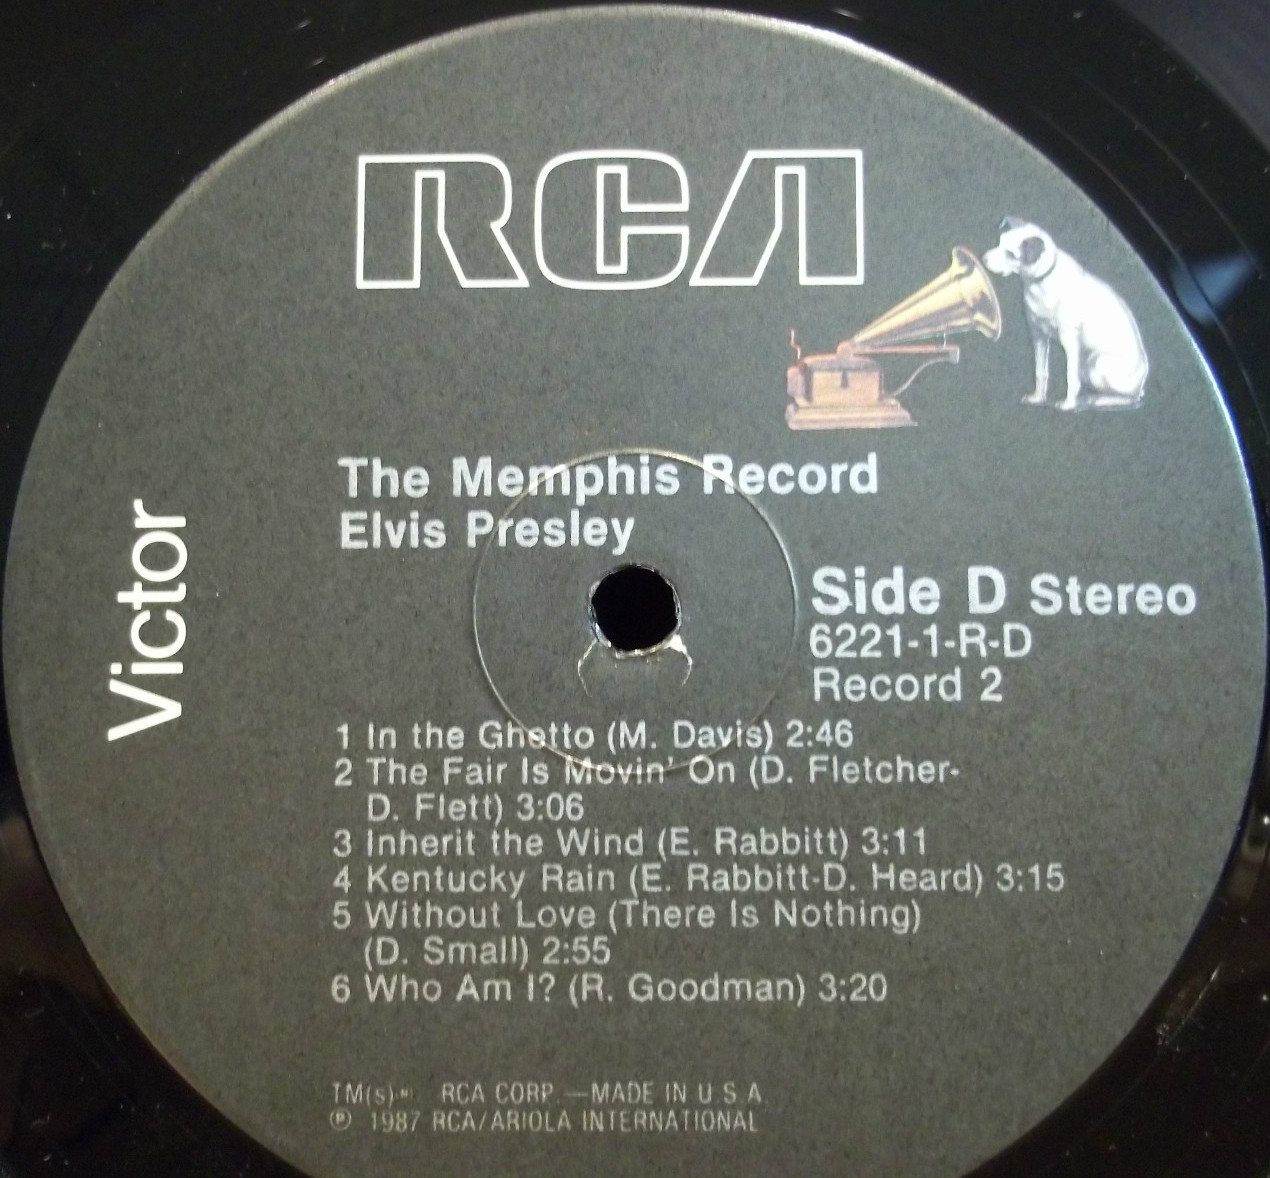 THE MEMPHIS RECORD 6221-1-r-dyrucf